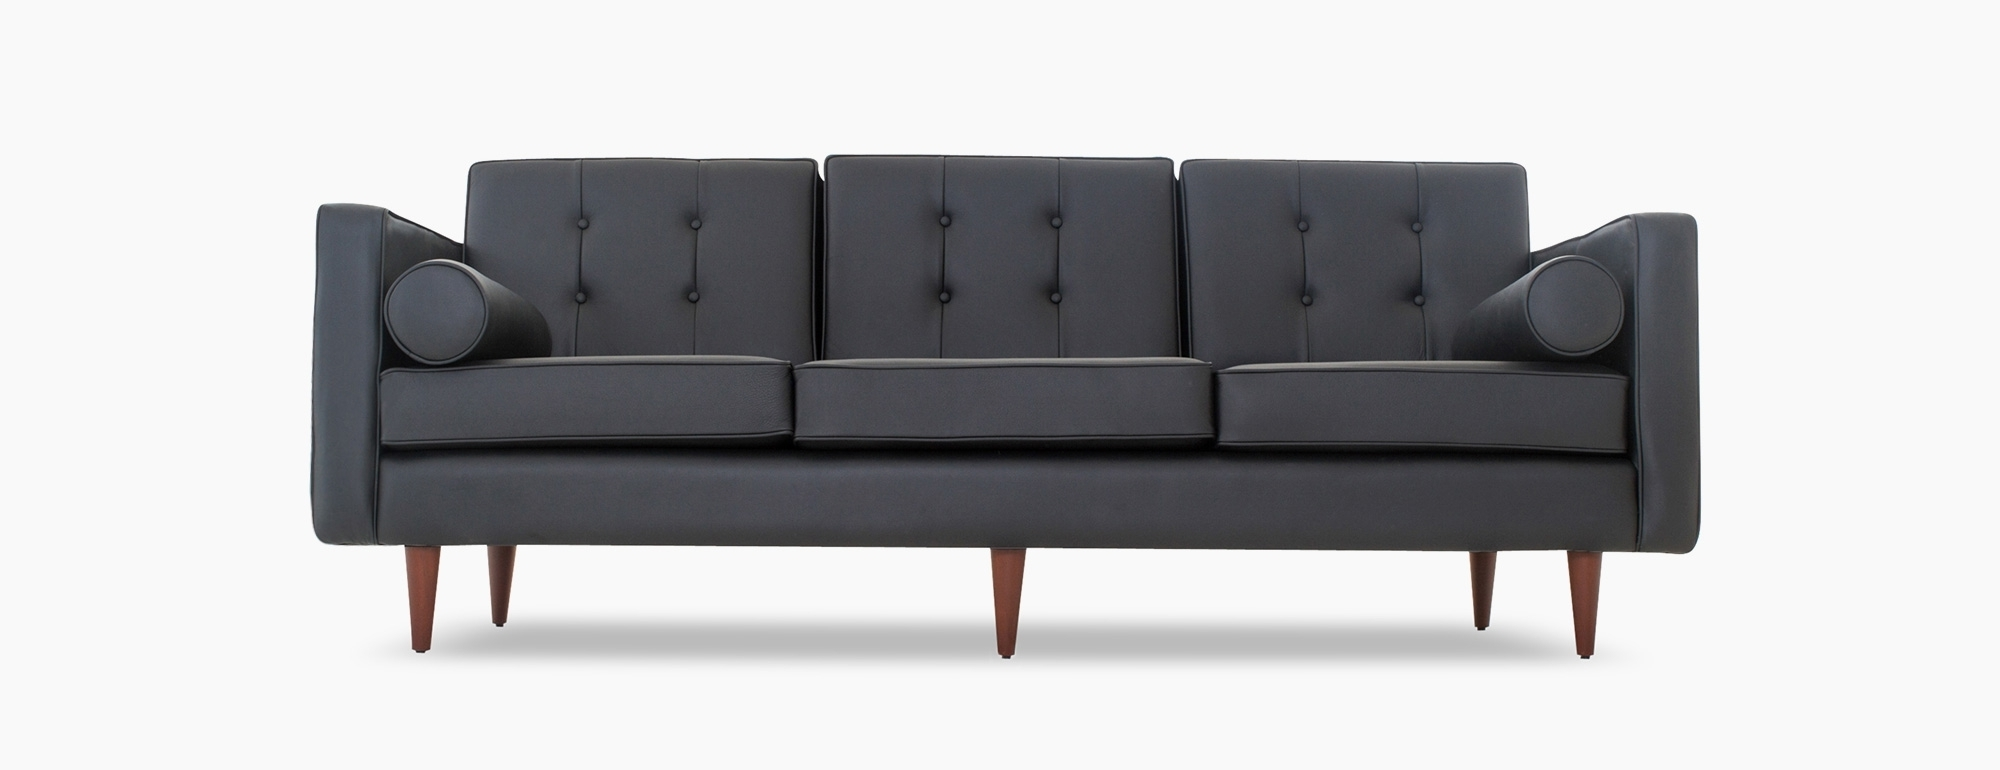 Braxton Leather Sofa Set • Leather Sofa Within Most Current Braxton Sofas (View 3 of 20)